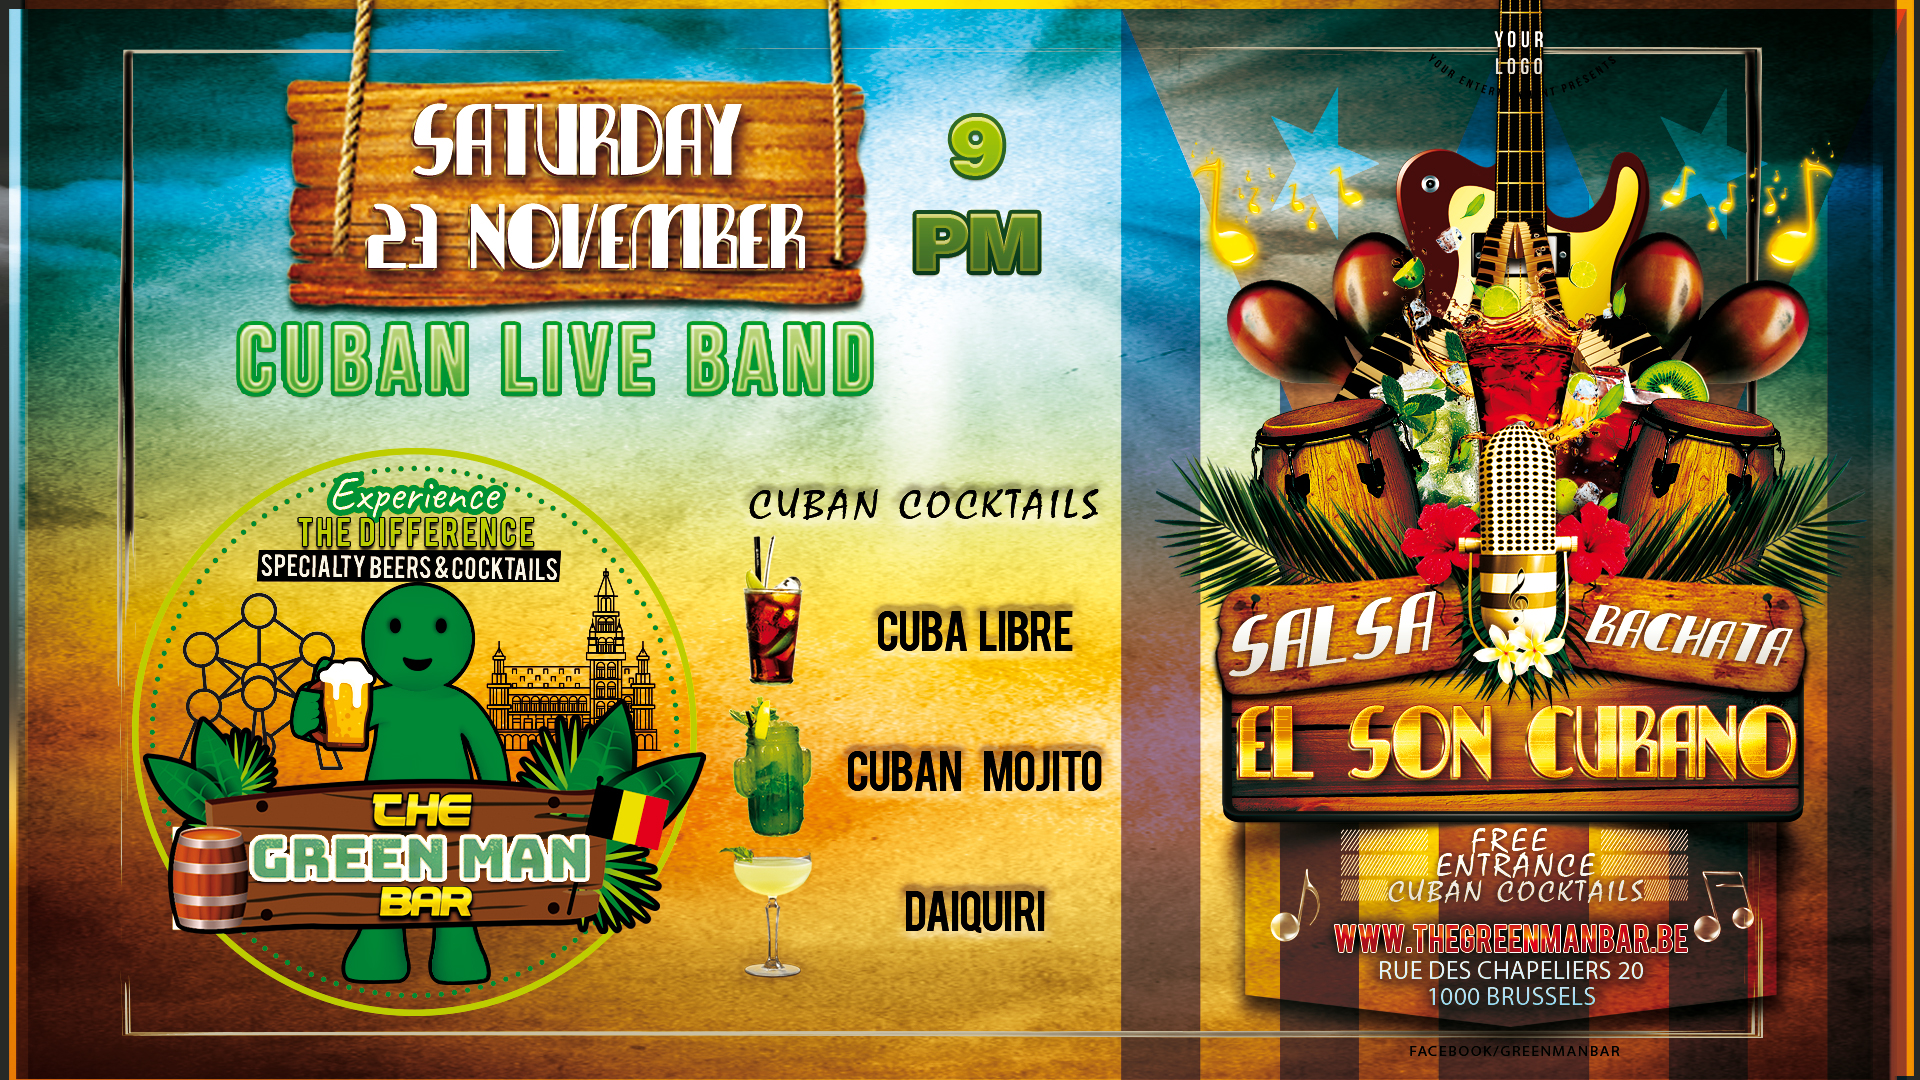 El Son Cubano – Cuban Live Music night – Saturday 23 november PM